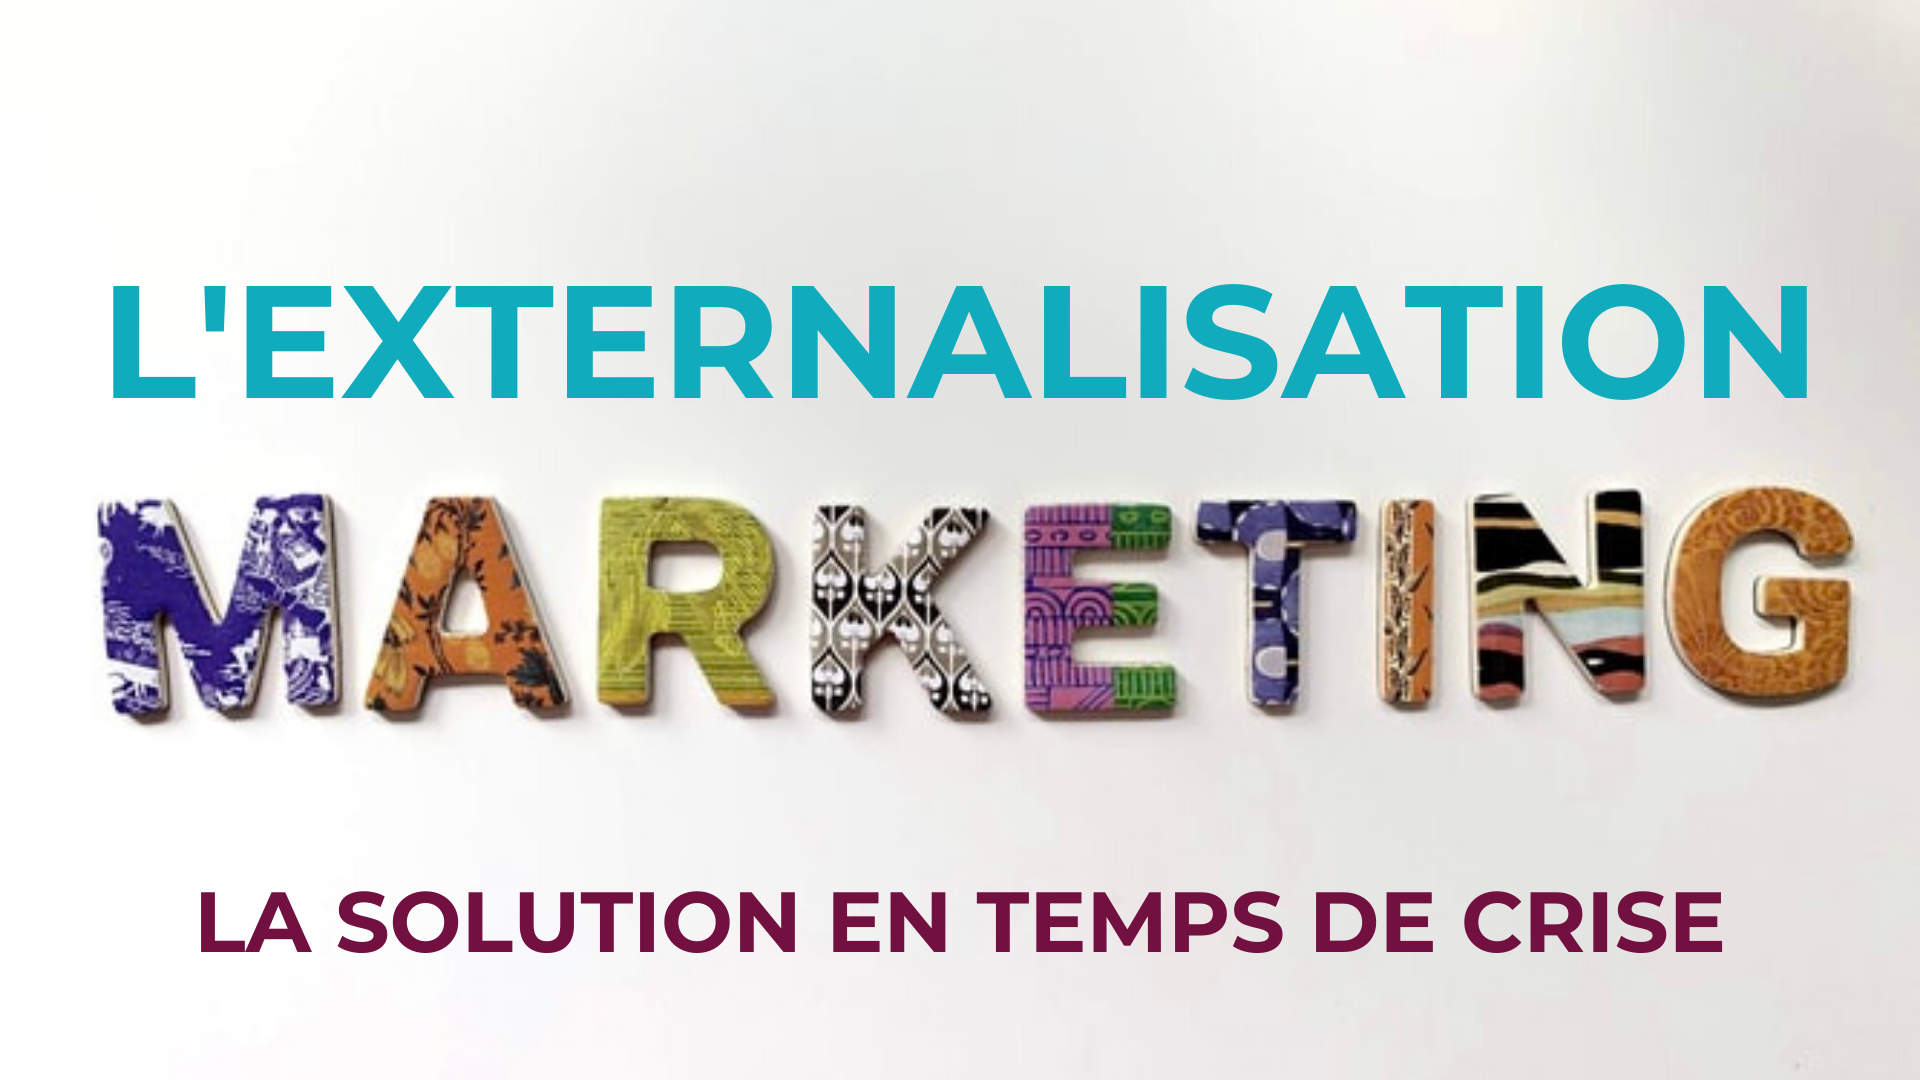 Externalisation marketing article MBD Open marketing (juin 2020)